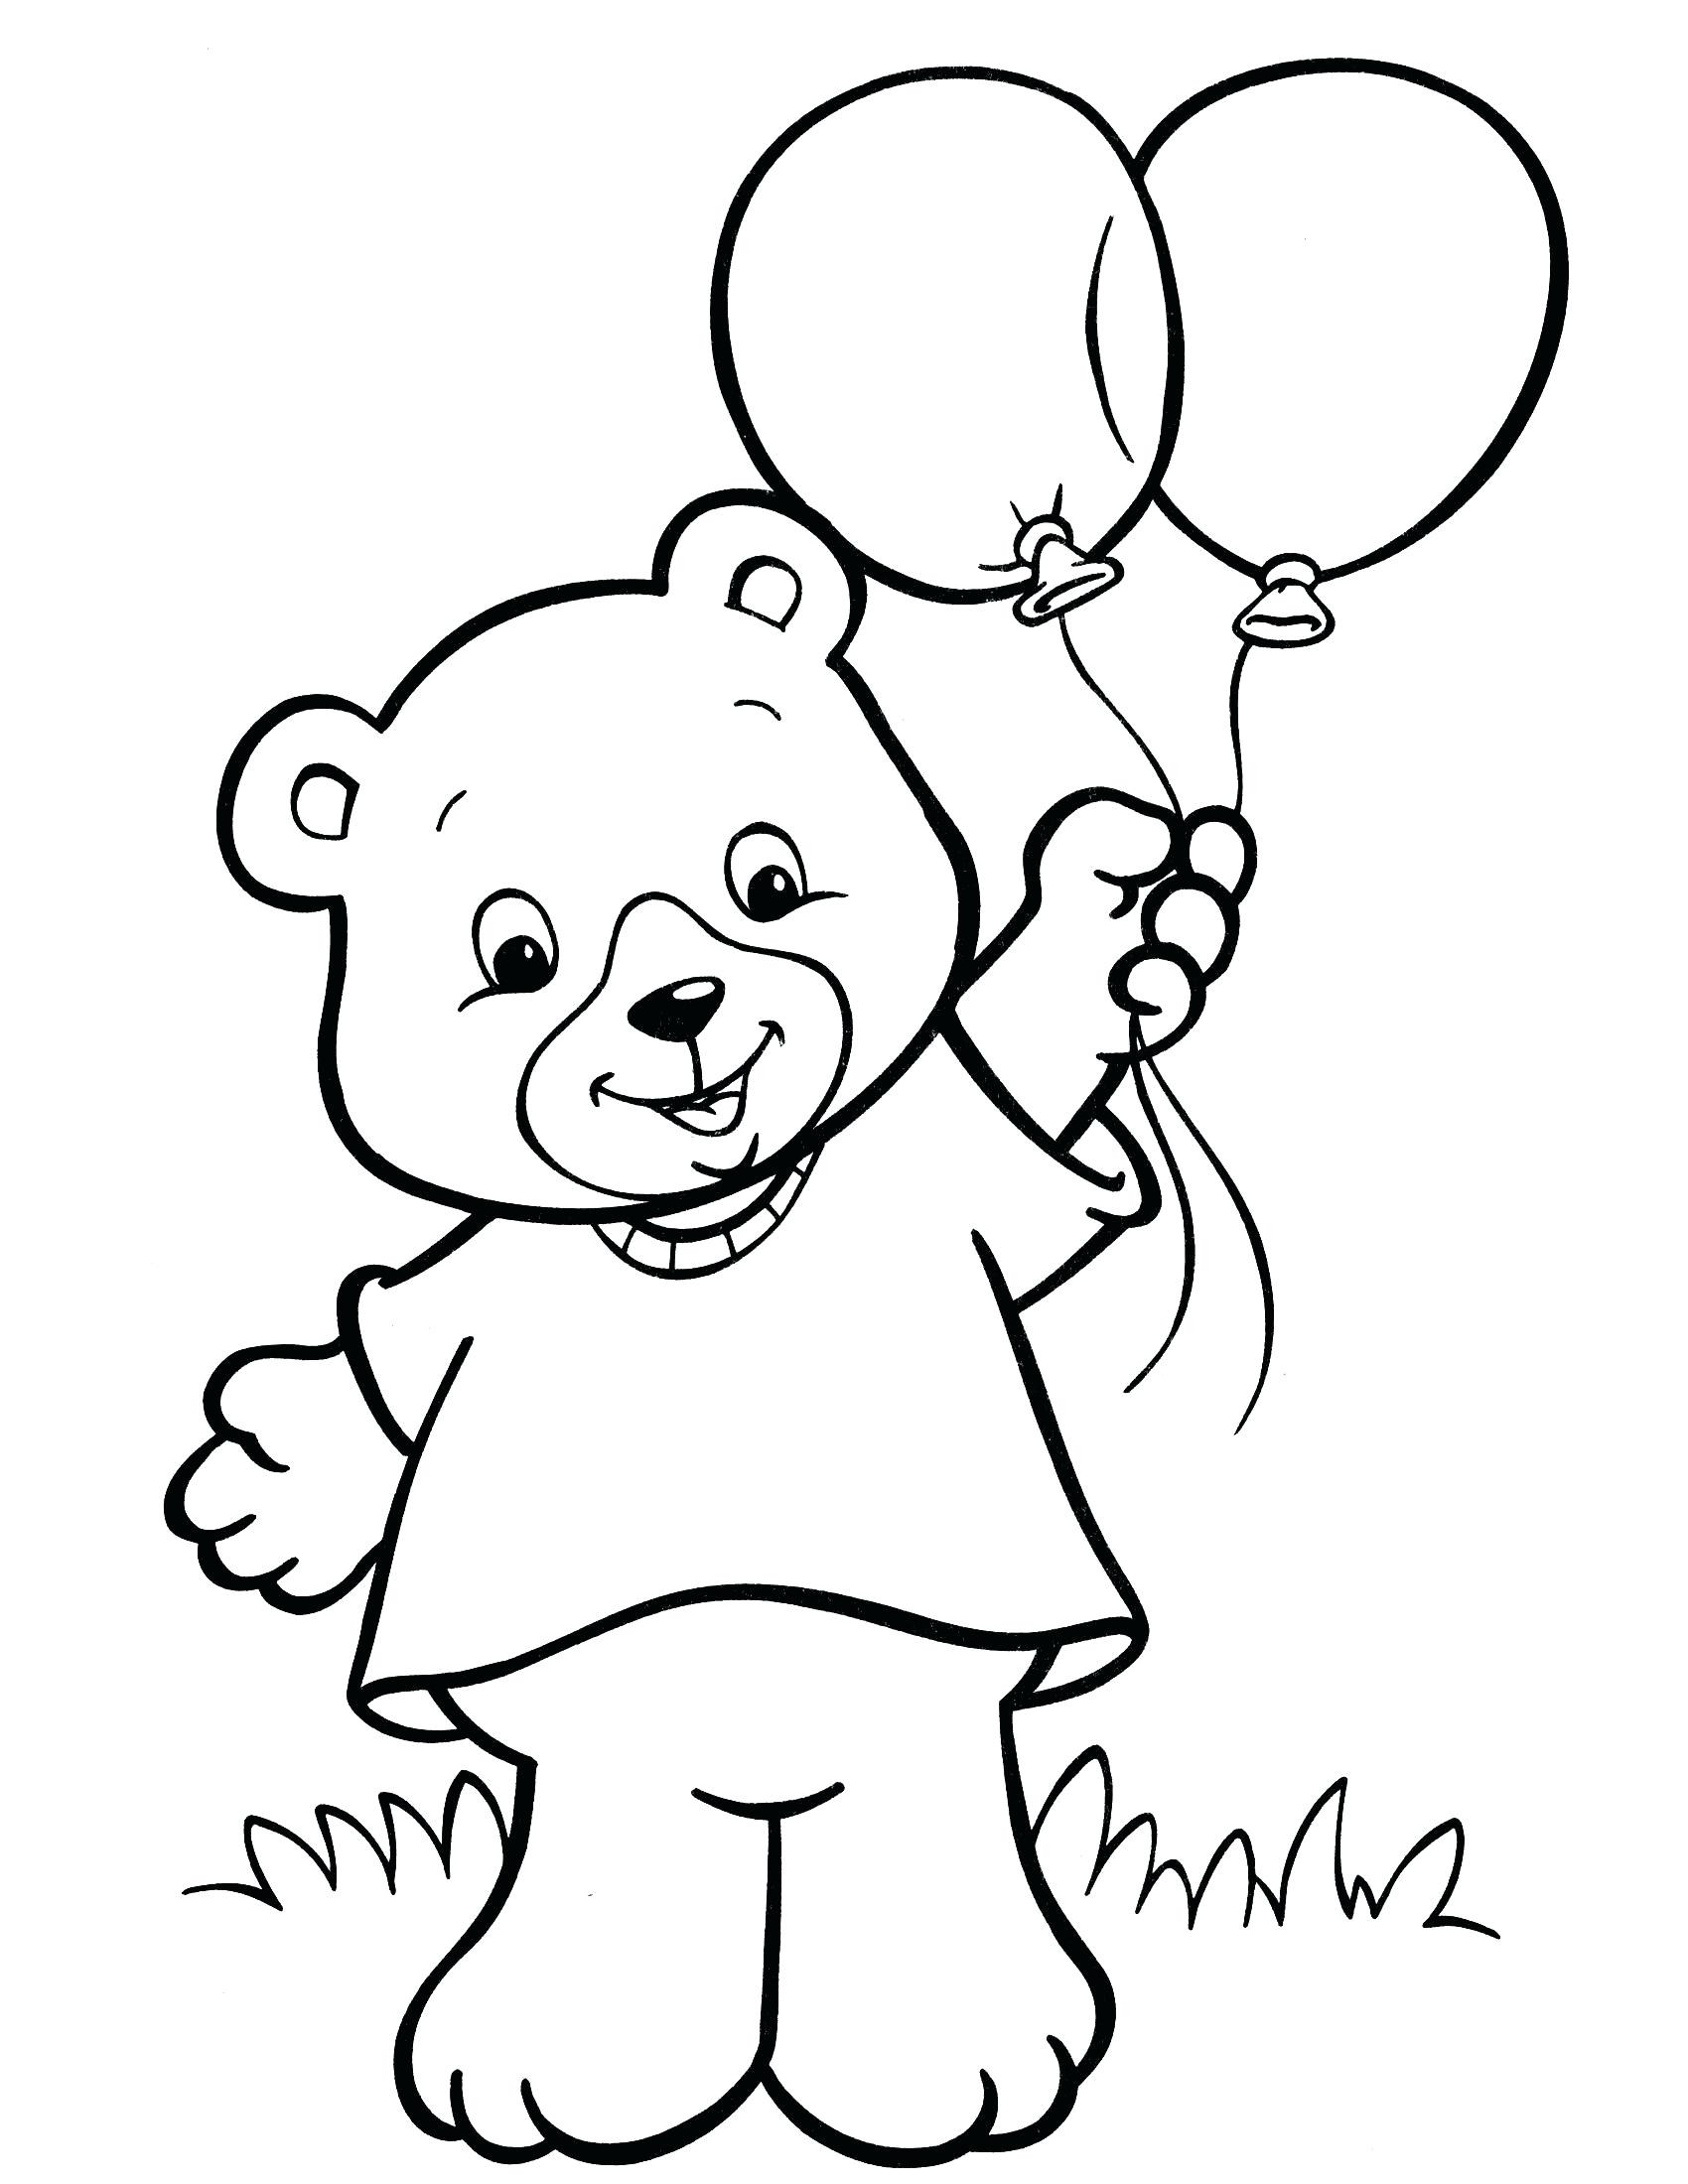 13 Year Old Coloring Pages At Getcolorings